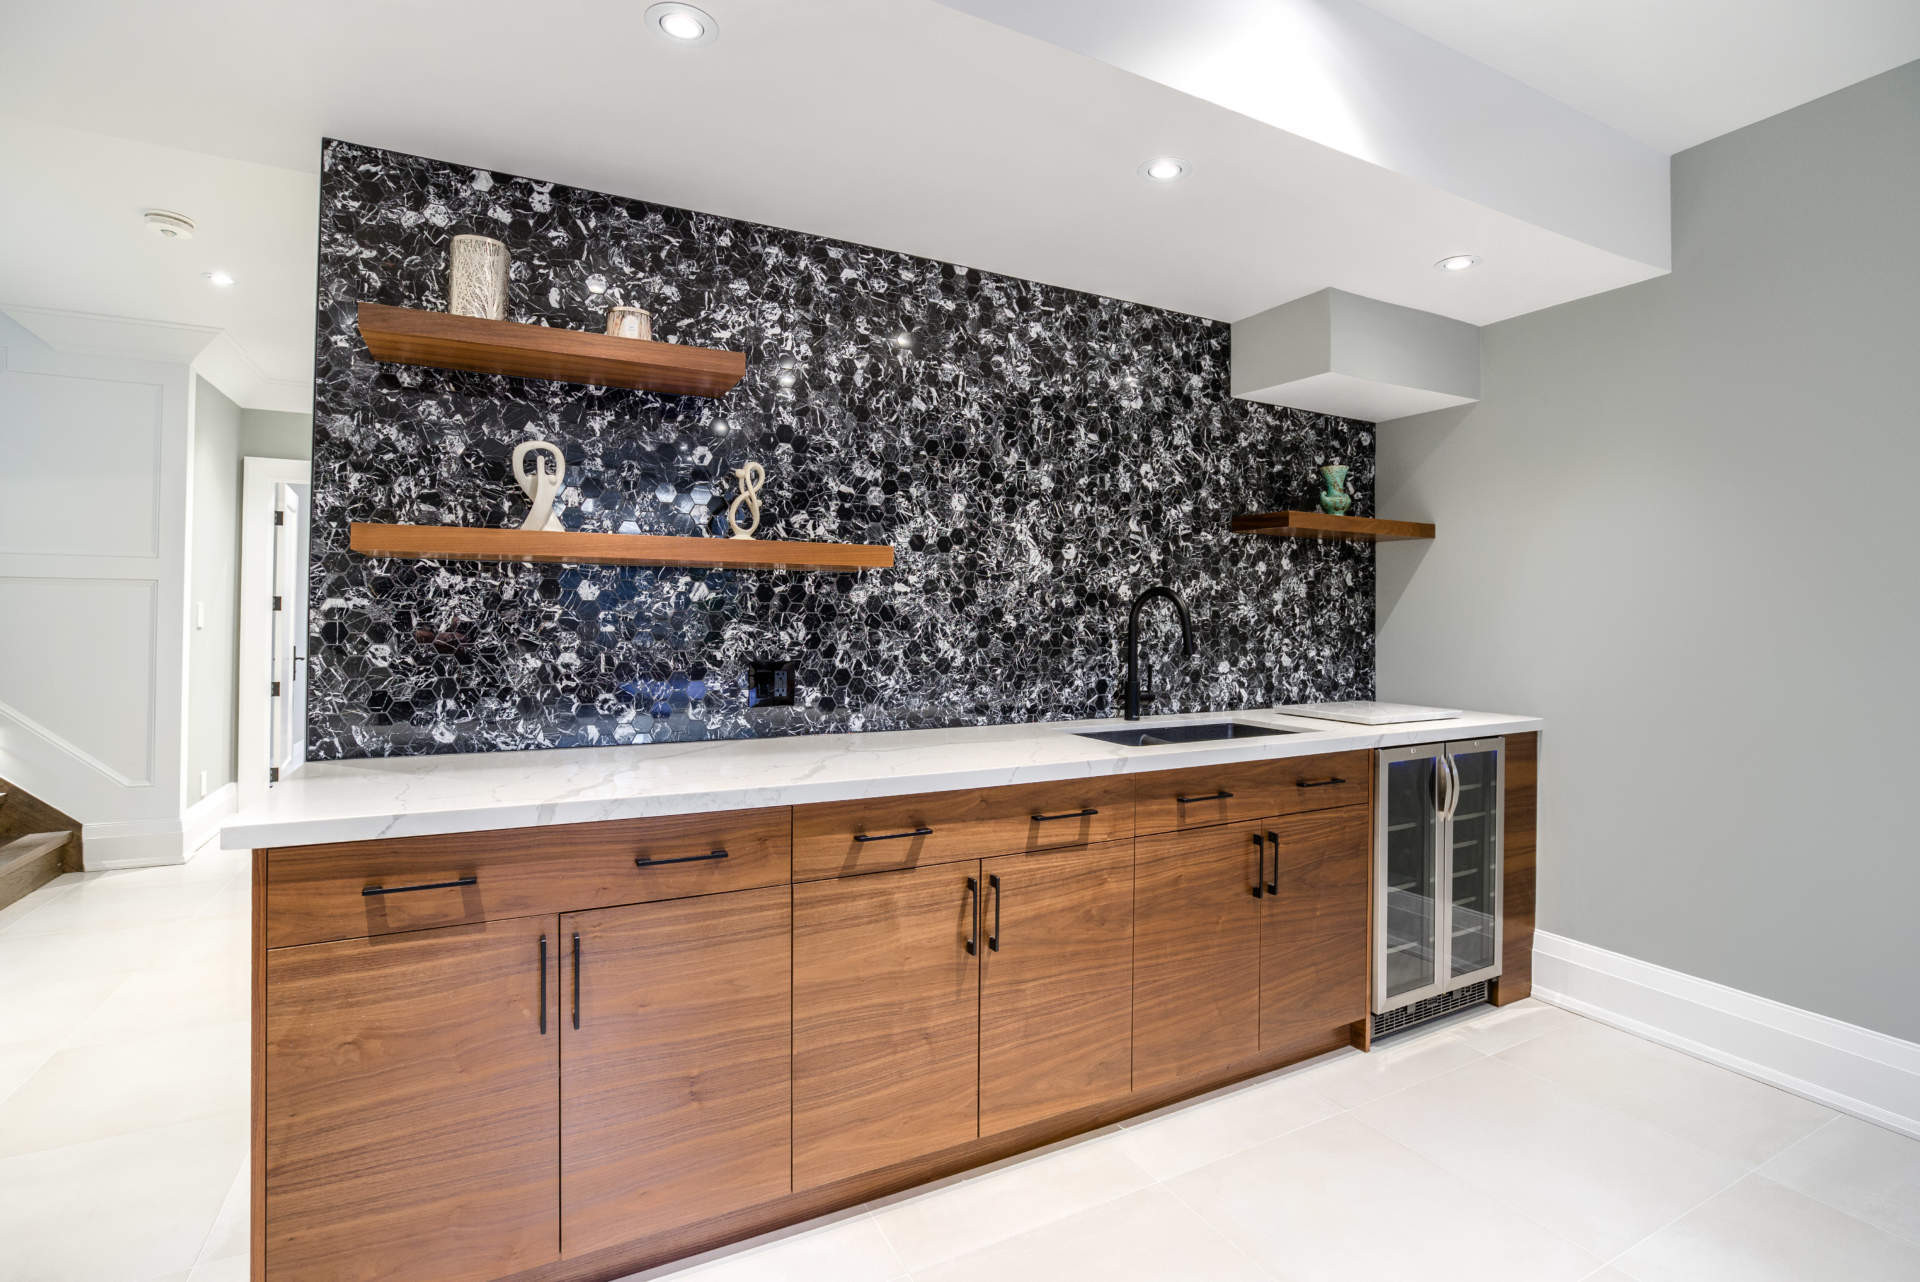 The Kingsway Transitional